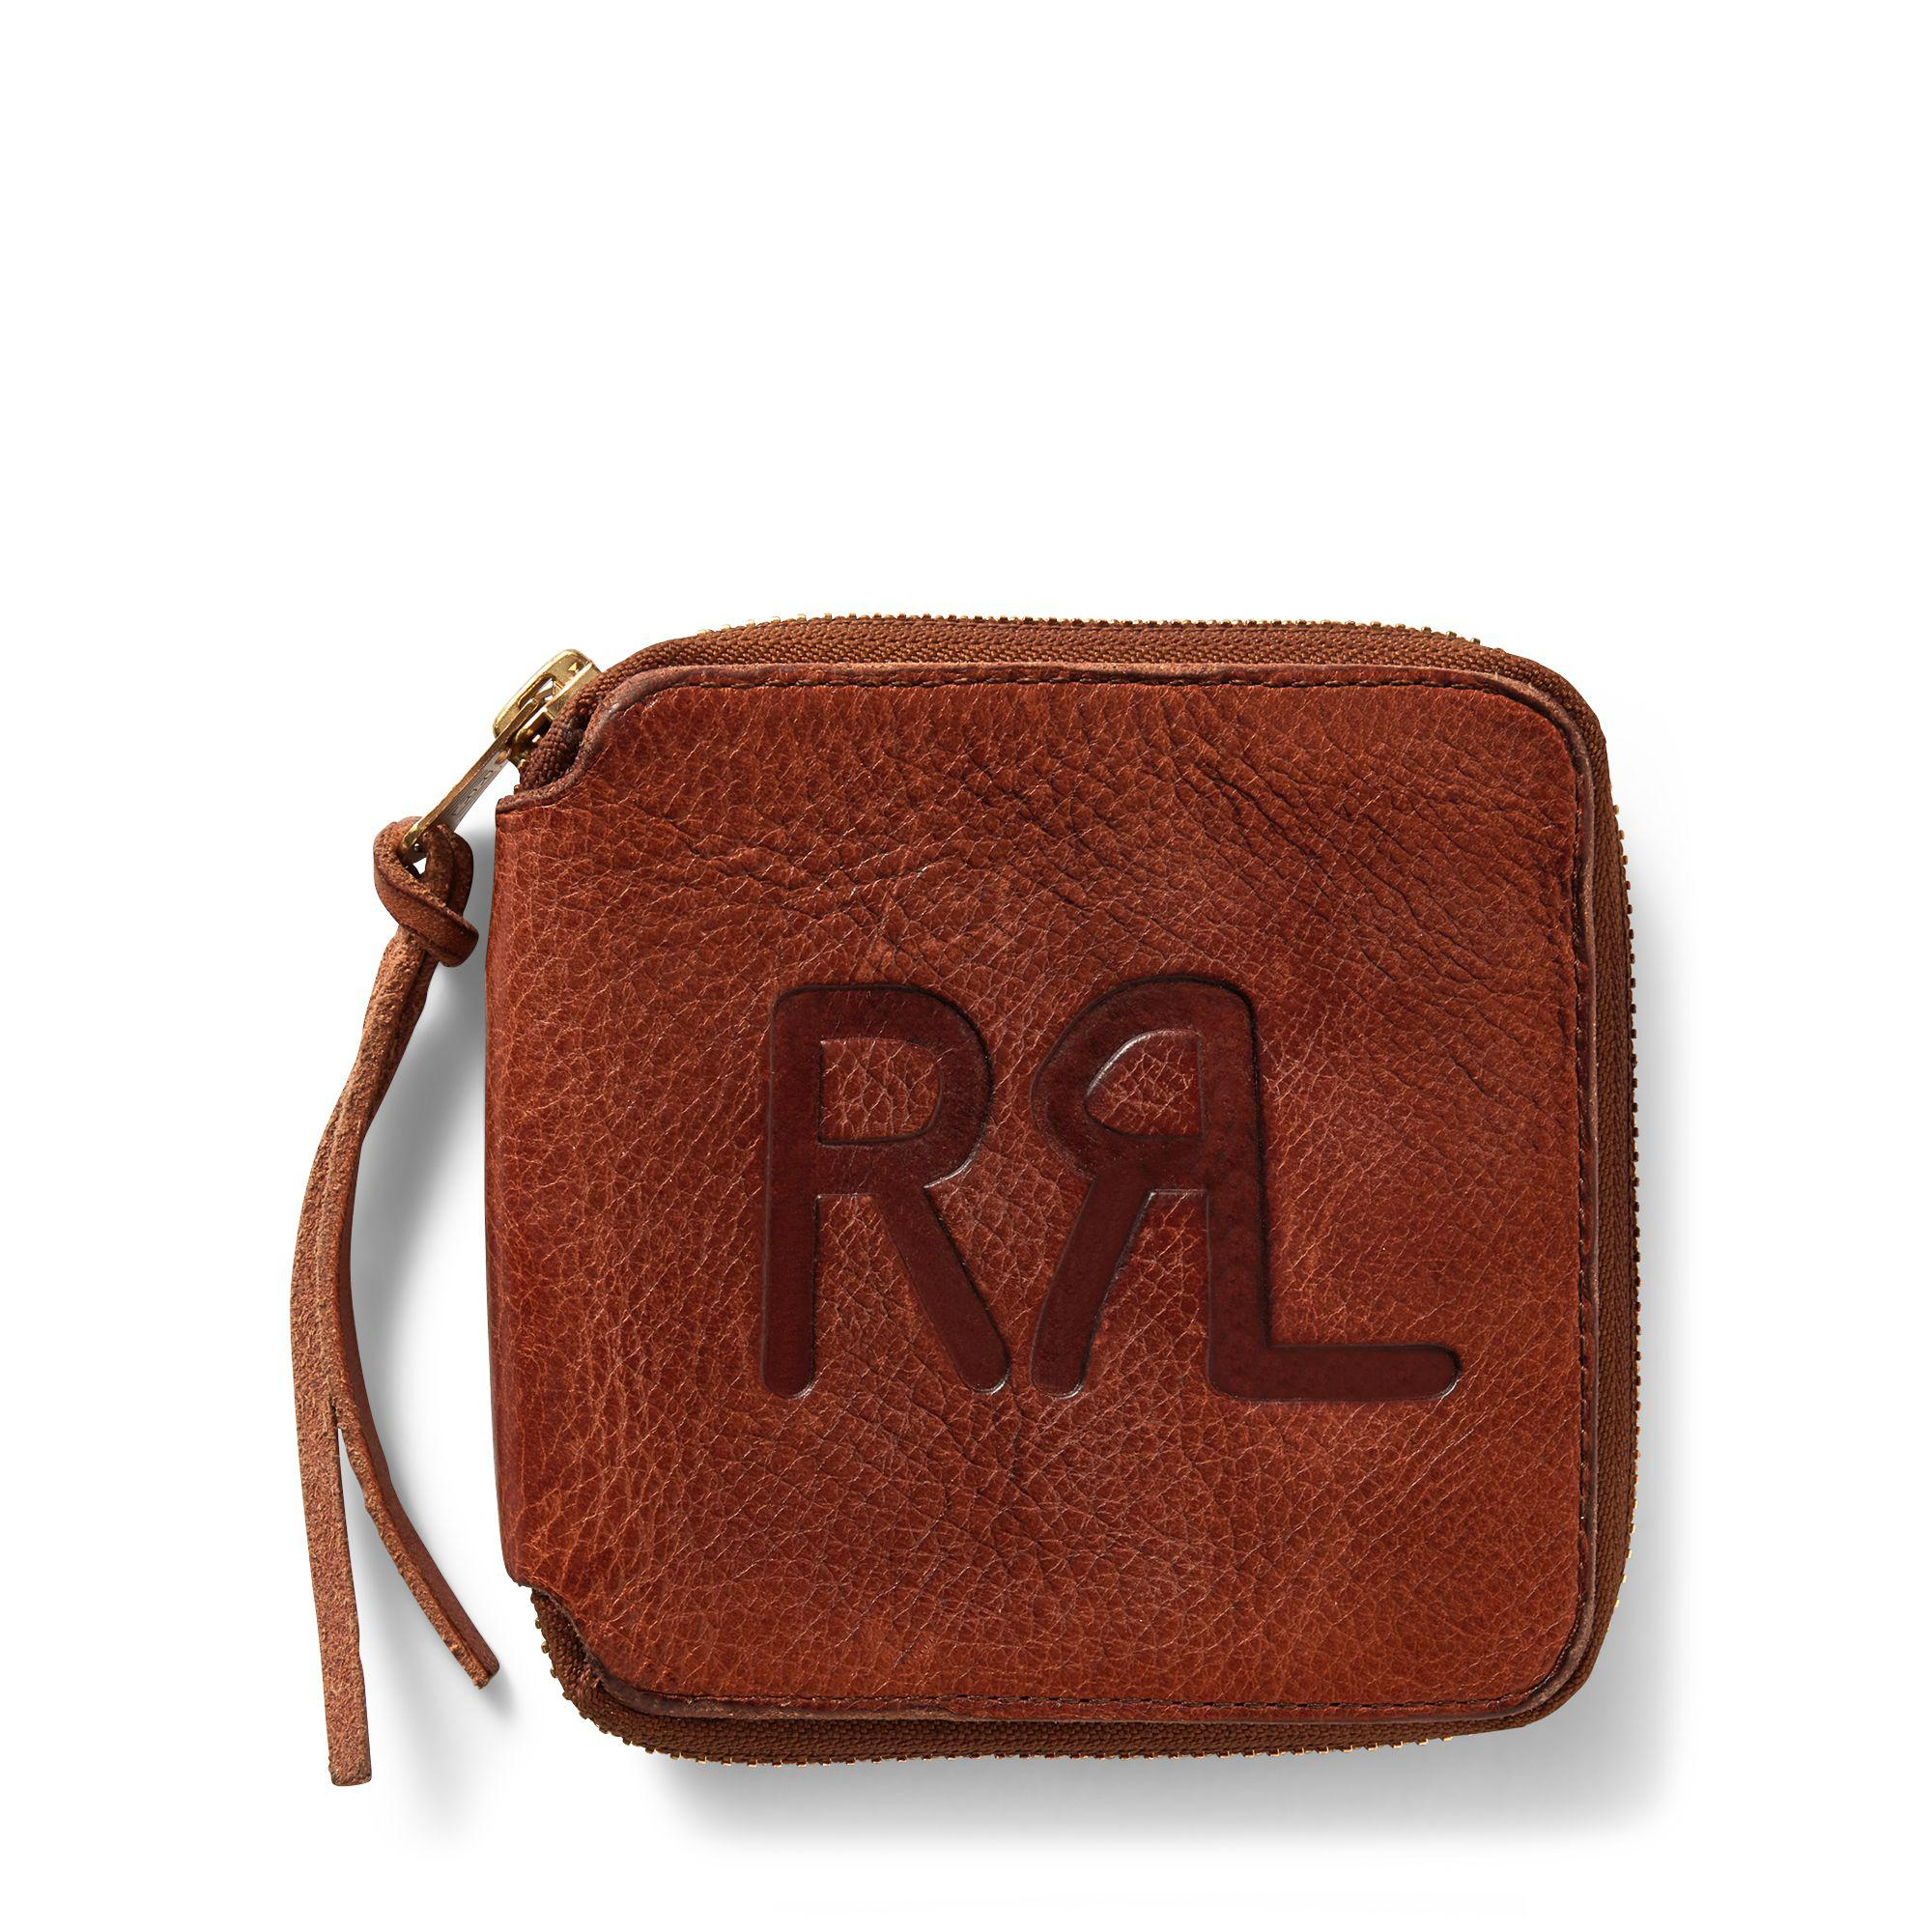 80dfc96d2e32 Lyst - RRL Tumbled Leather Zip Wallet in Brown for Men